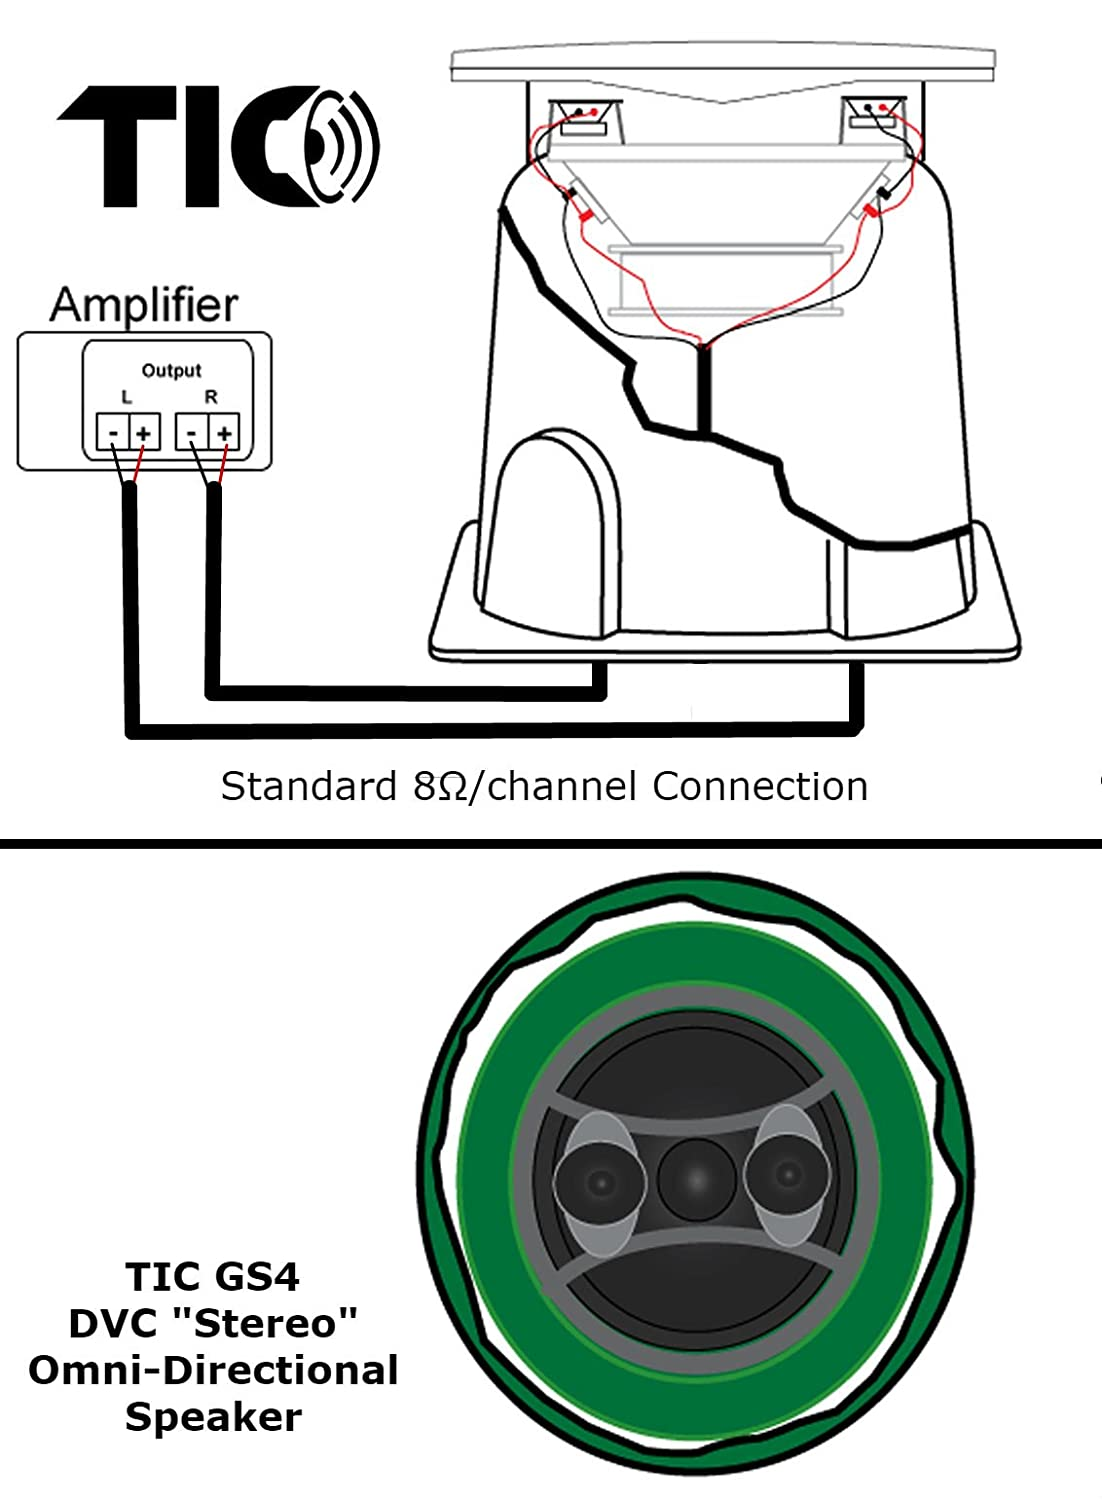 Wiring Diagram For Stereo Omni Out Quick Start Guide Of Dodge Amazon Com Tic Gs4 8 Outdoor Weather Resistant Omnidirectional Rh Dish Washer Ford Harness